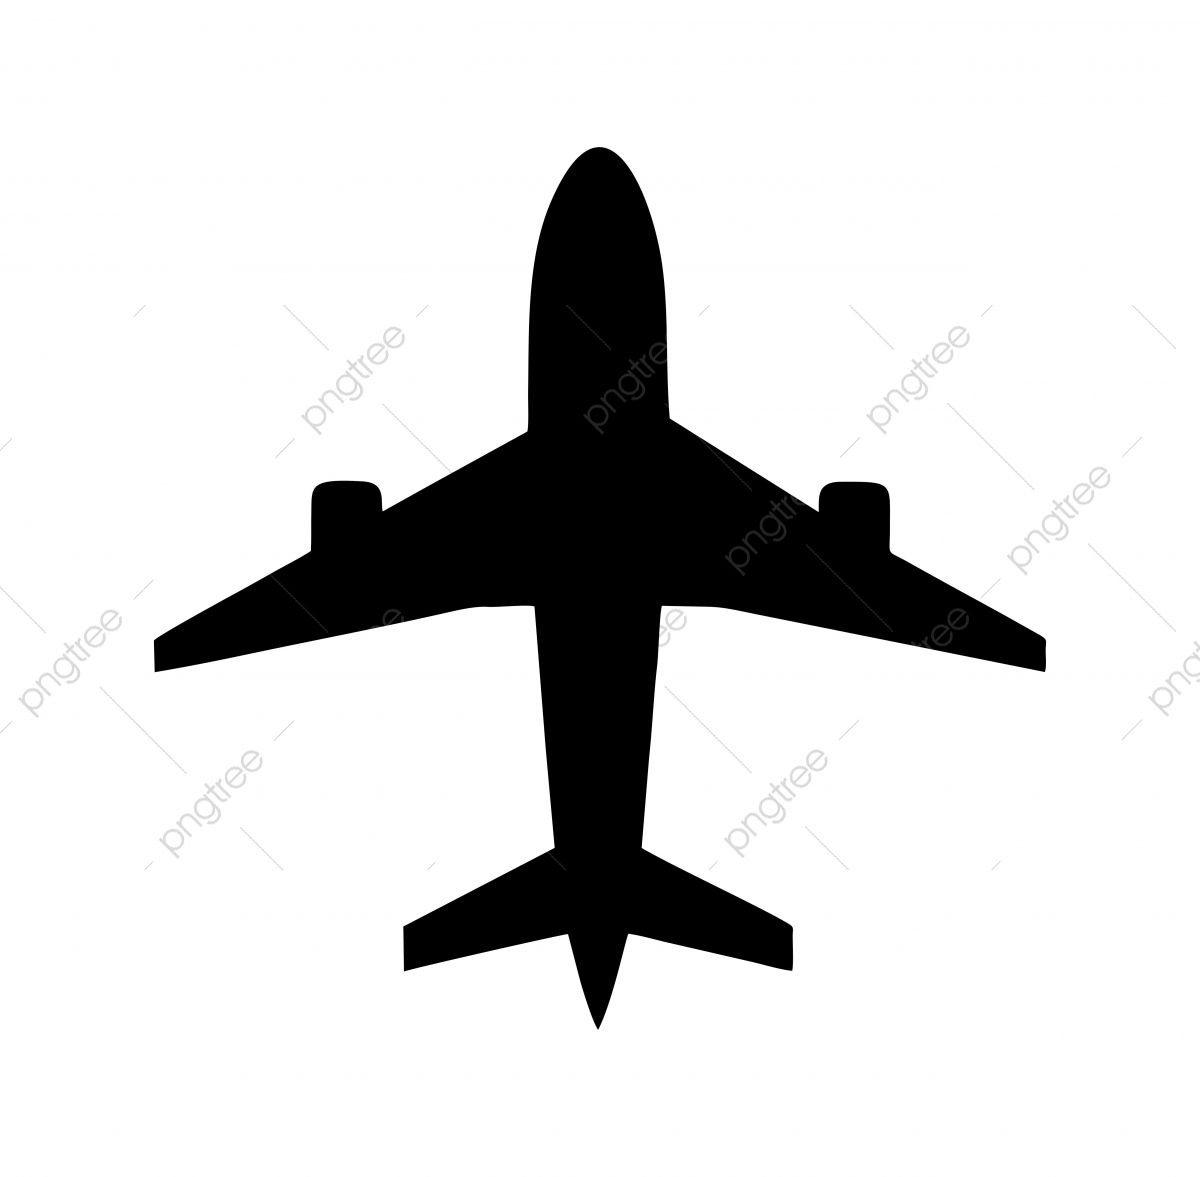 Airplane Clipart Download Free Transparent Png Format Clipart Images On Pngtree